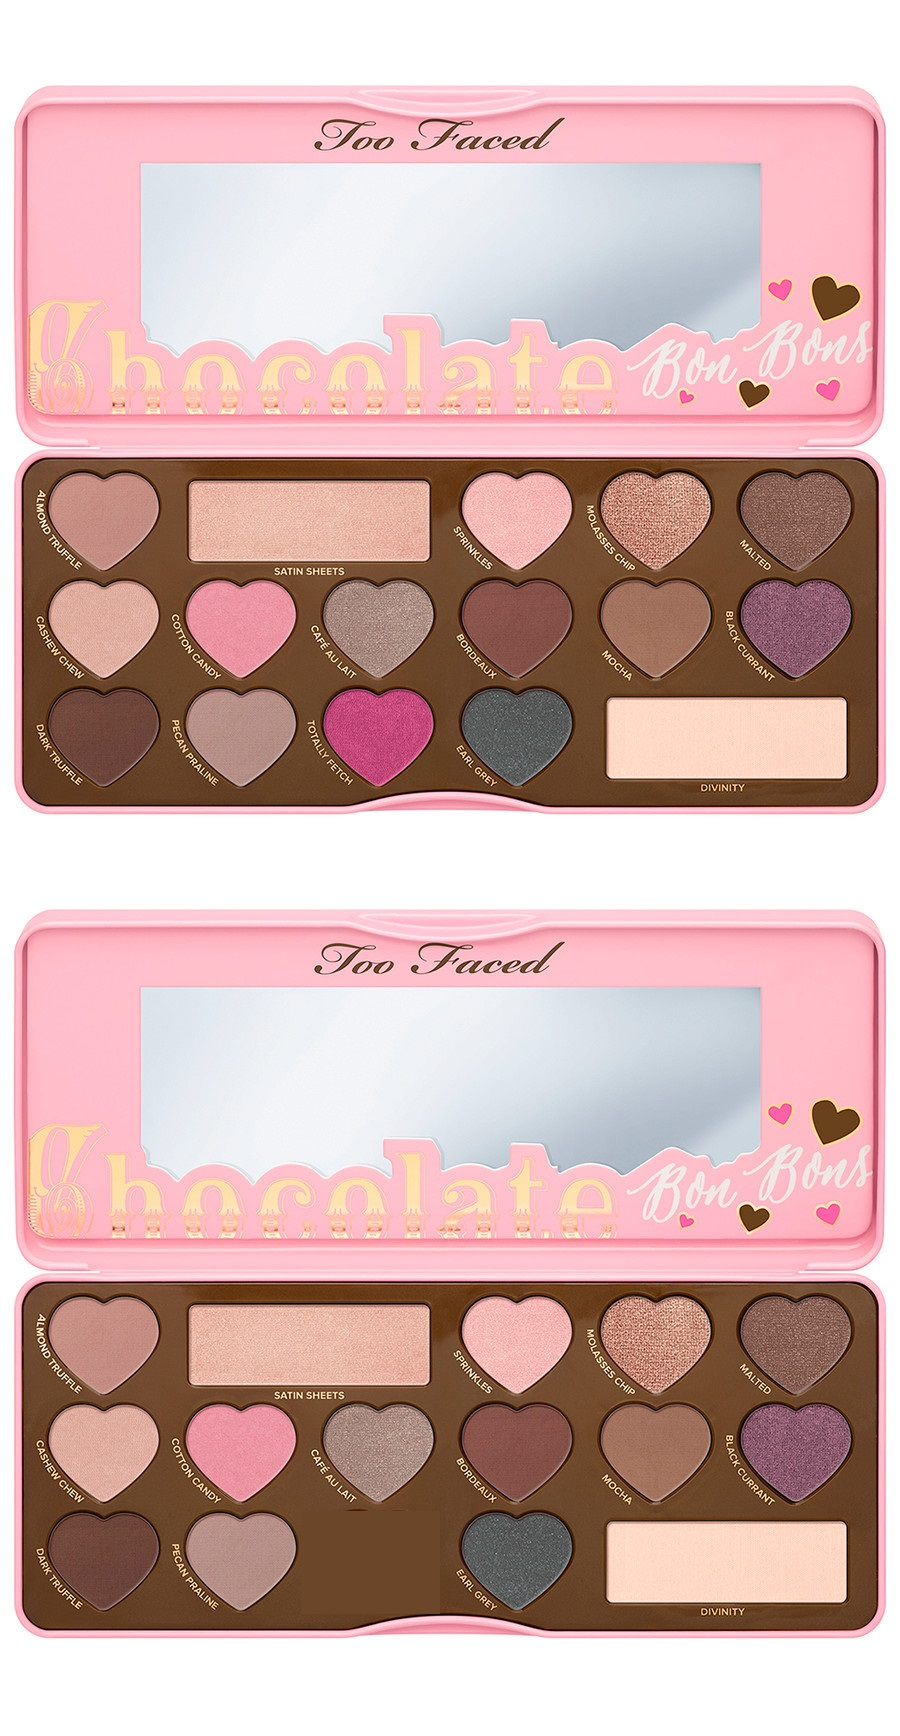 too faced chocolate bon bons pop effect